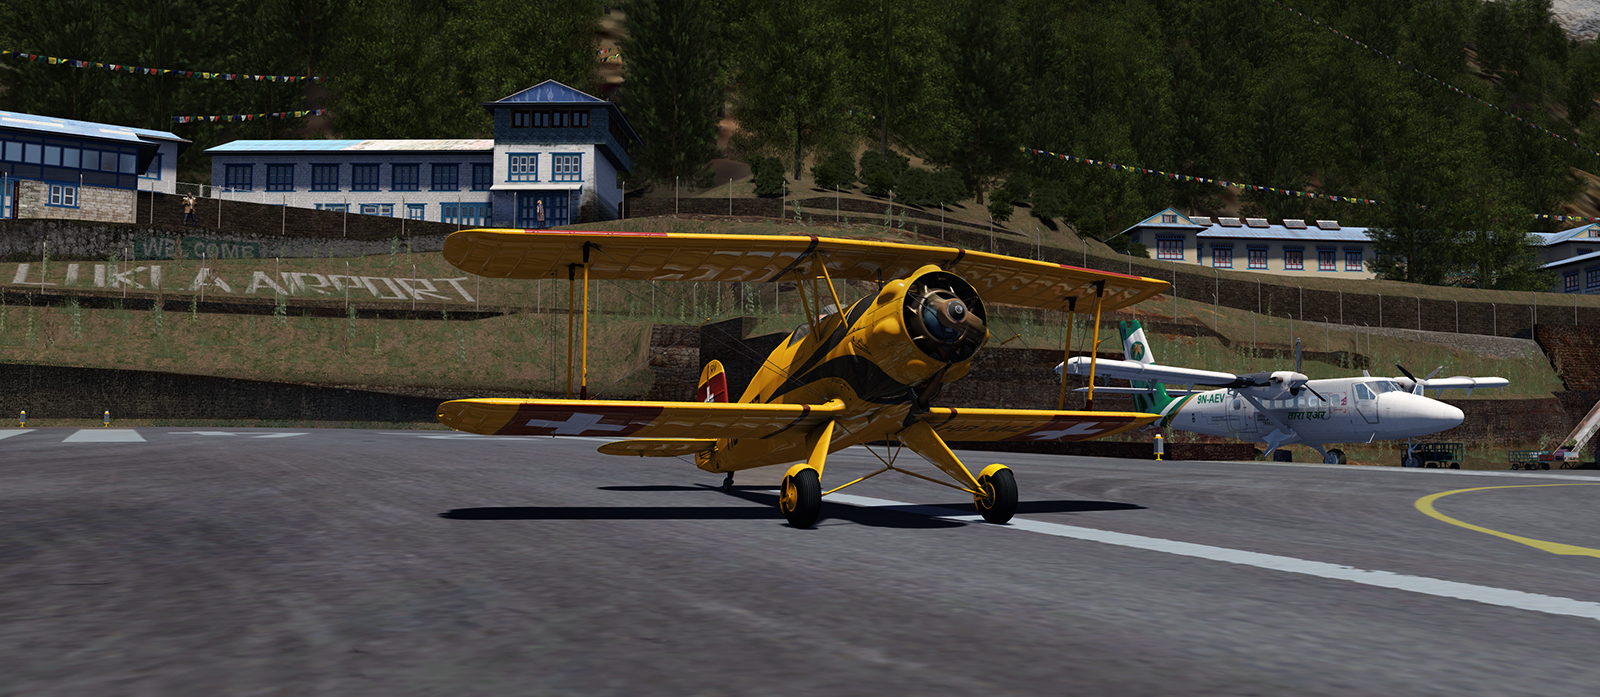 aerofly_fs_2_screenshot_46_20190614-0136